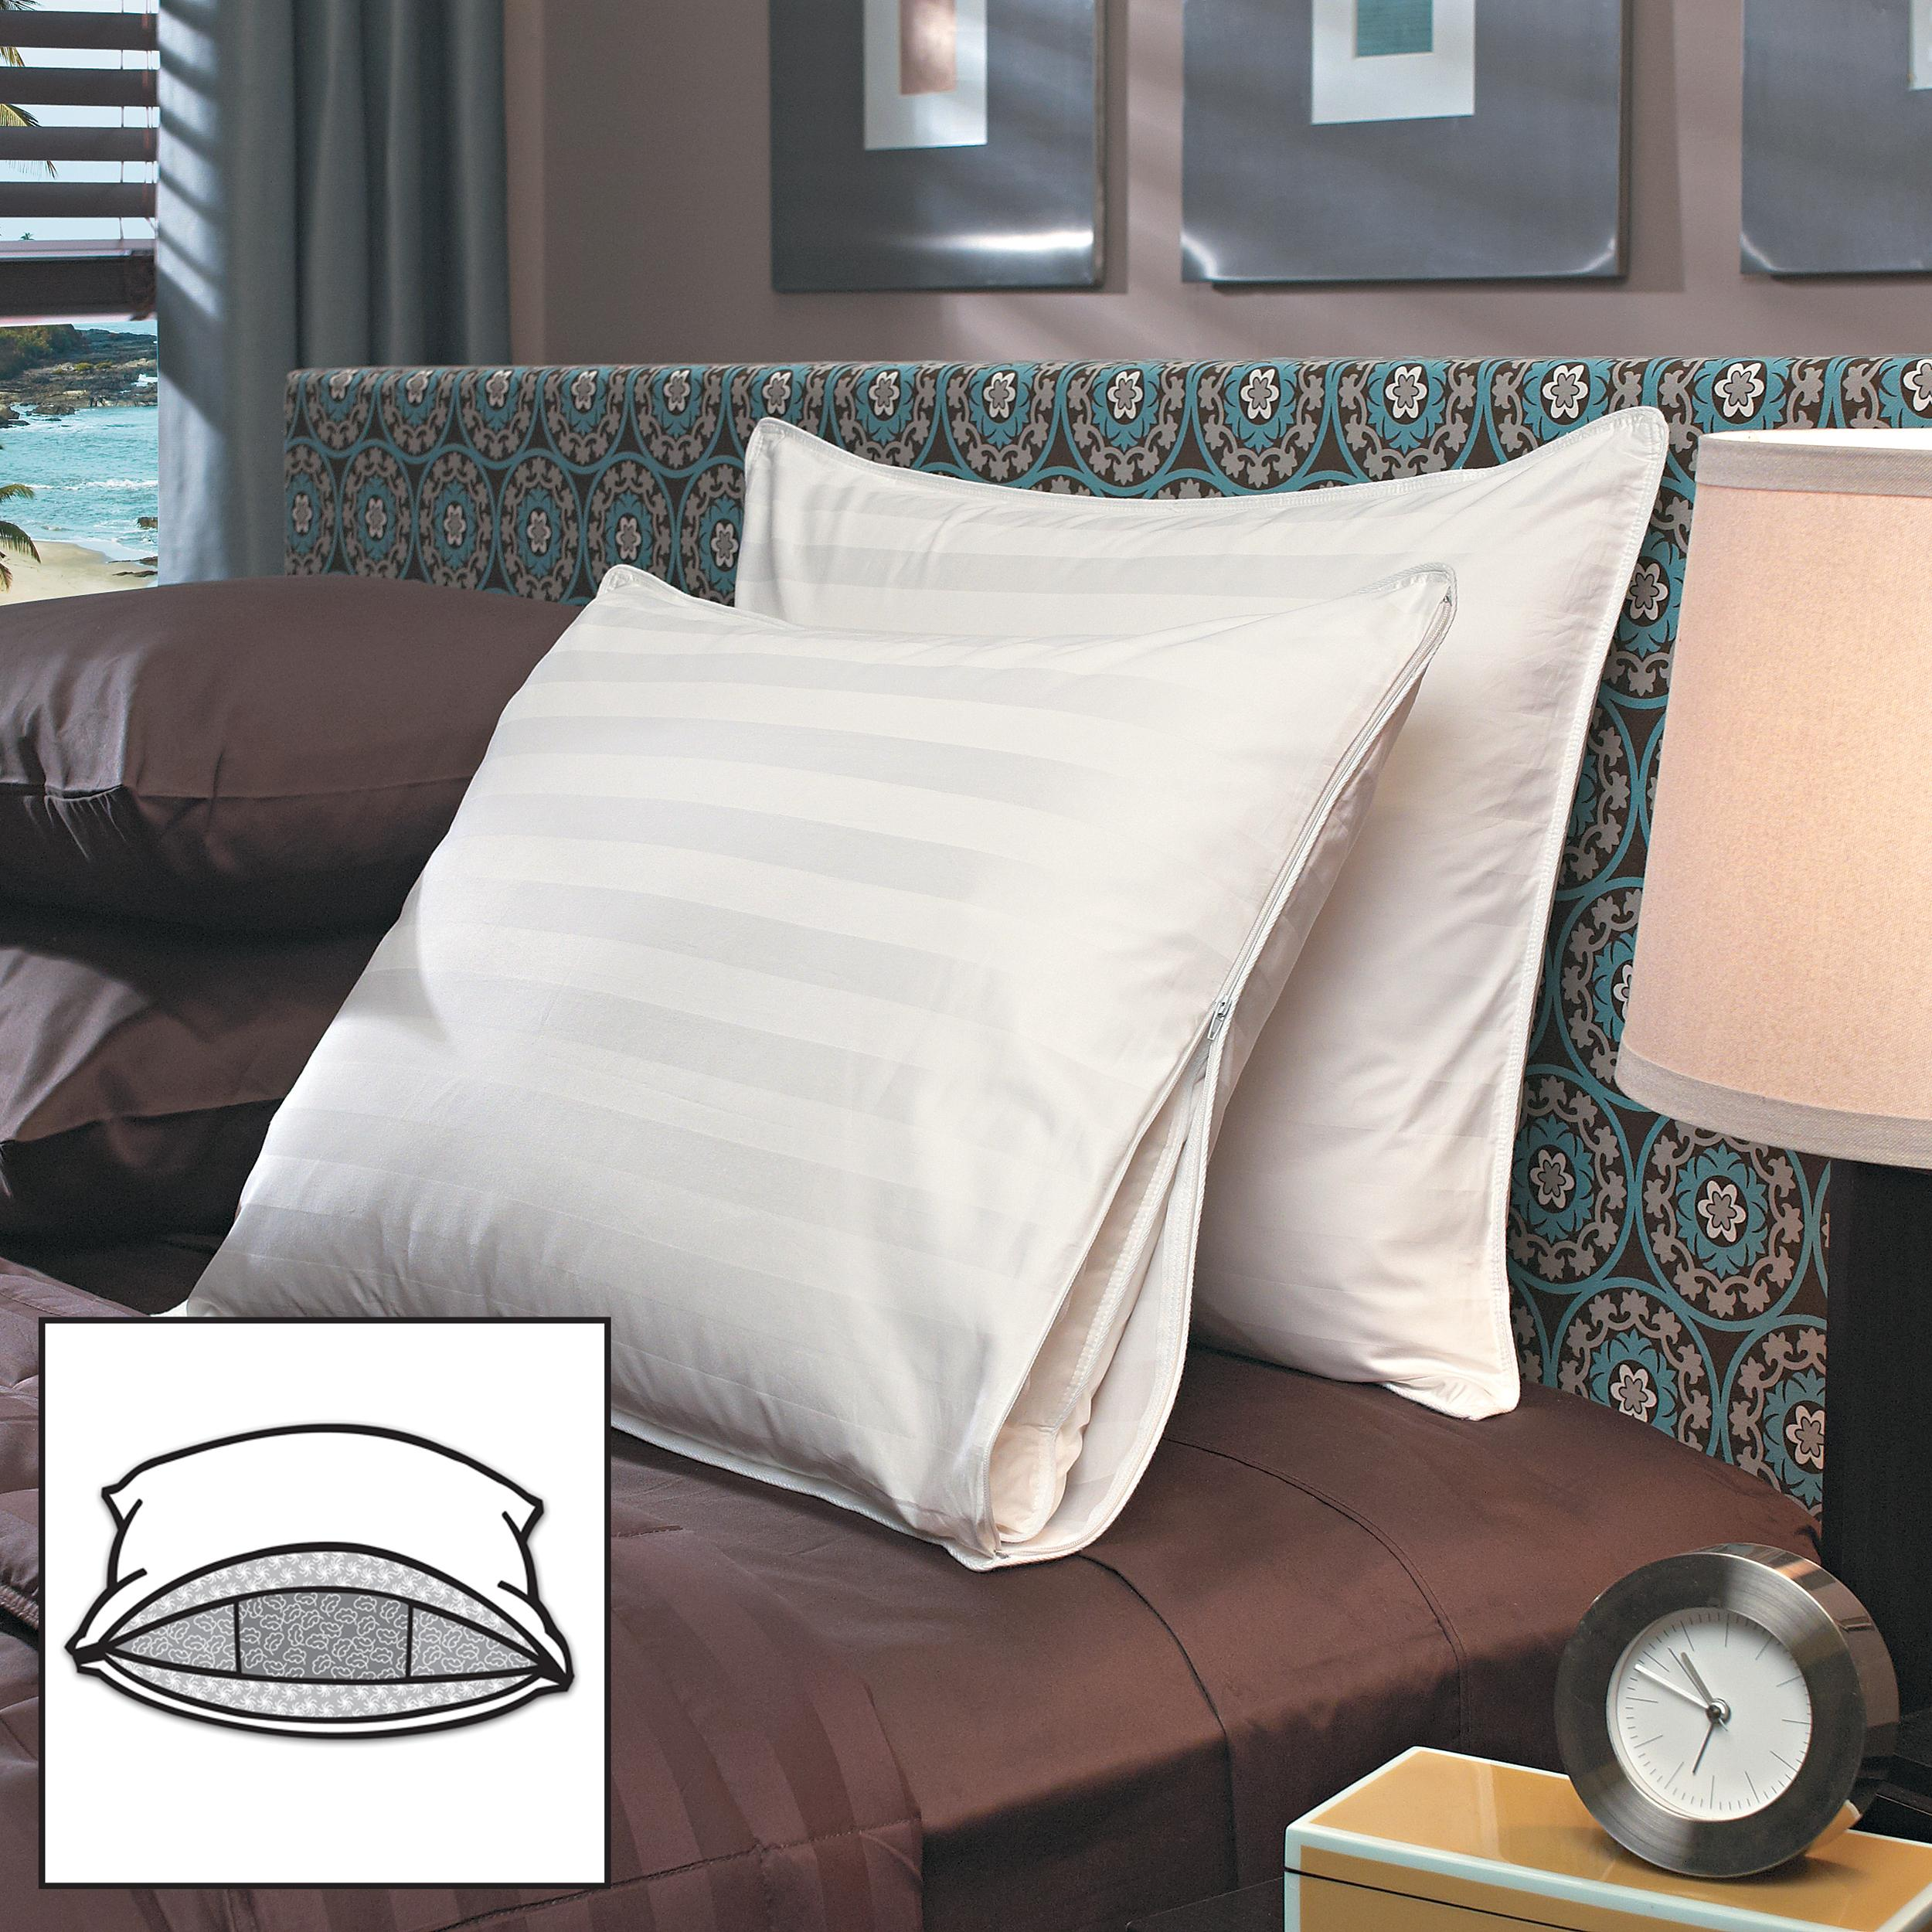 Famous Maker Triple Chamber 600 Fill Power Down Microfeather Pillows with Luxury 500 TC Protective Cover (Set of 2)